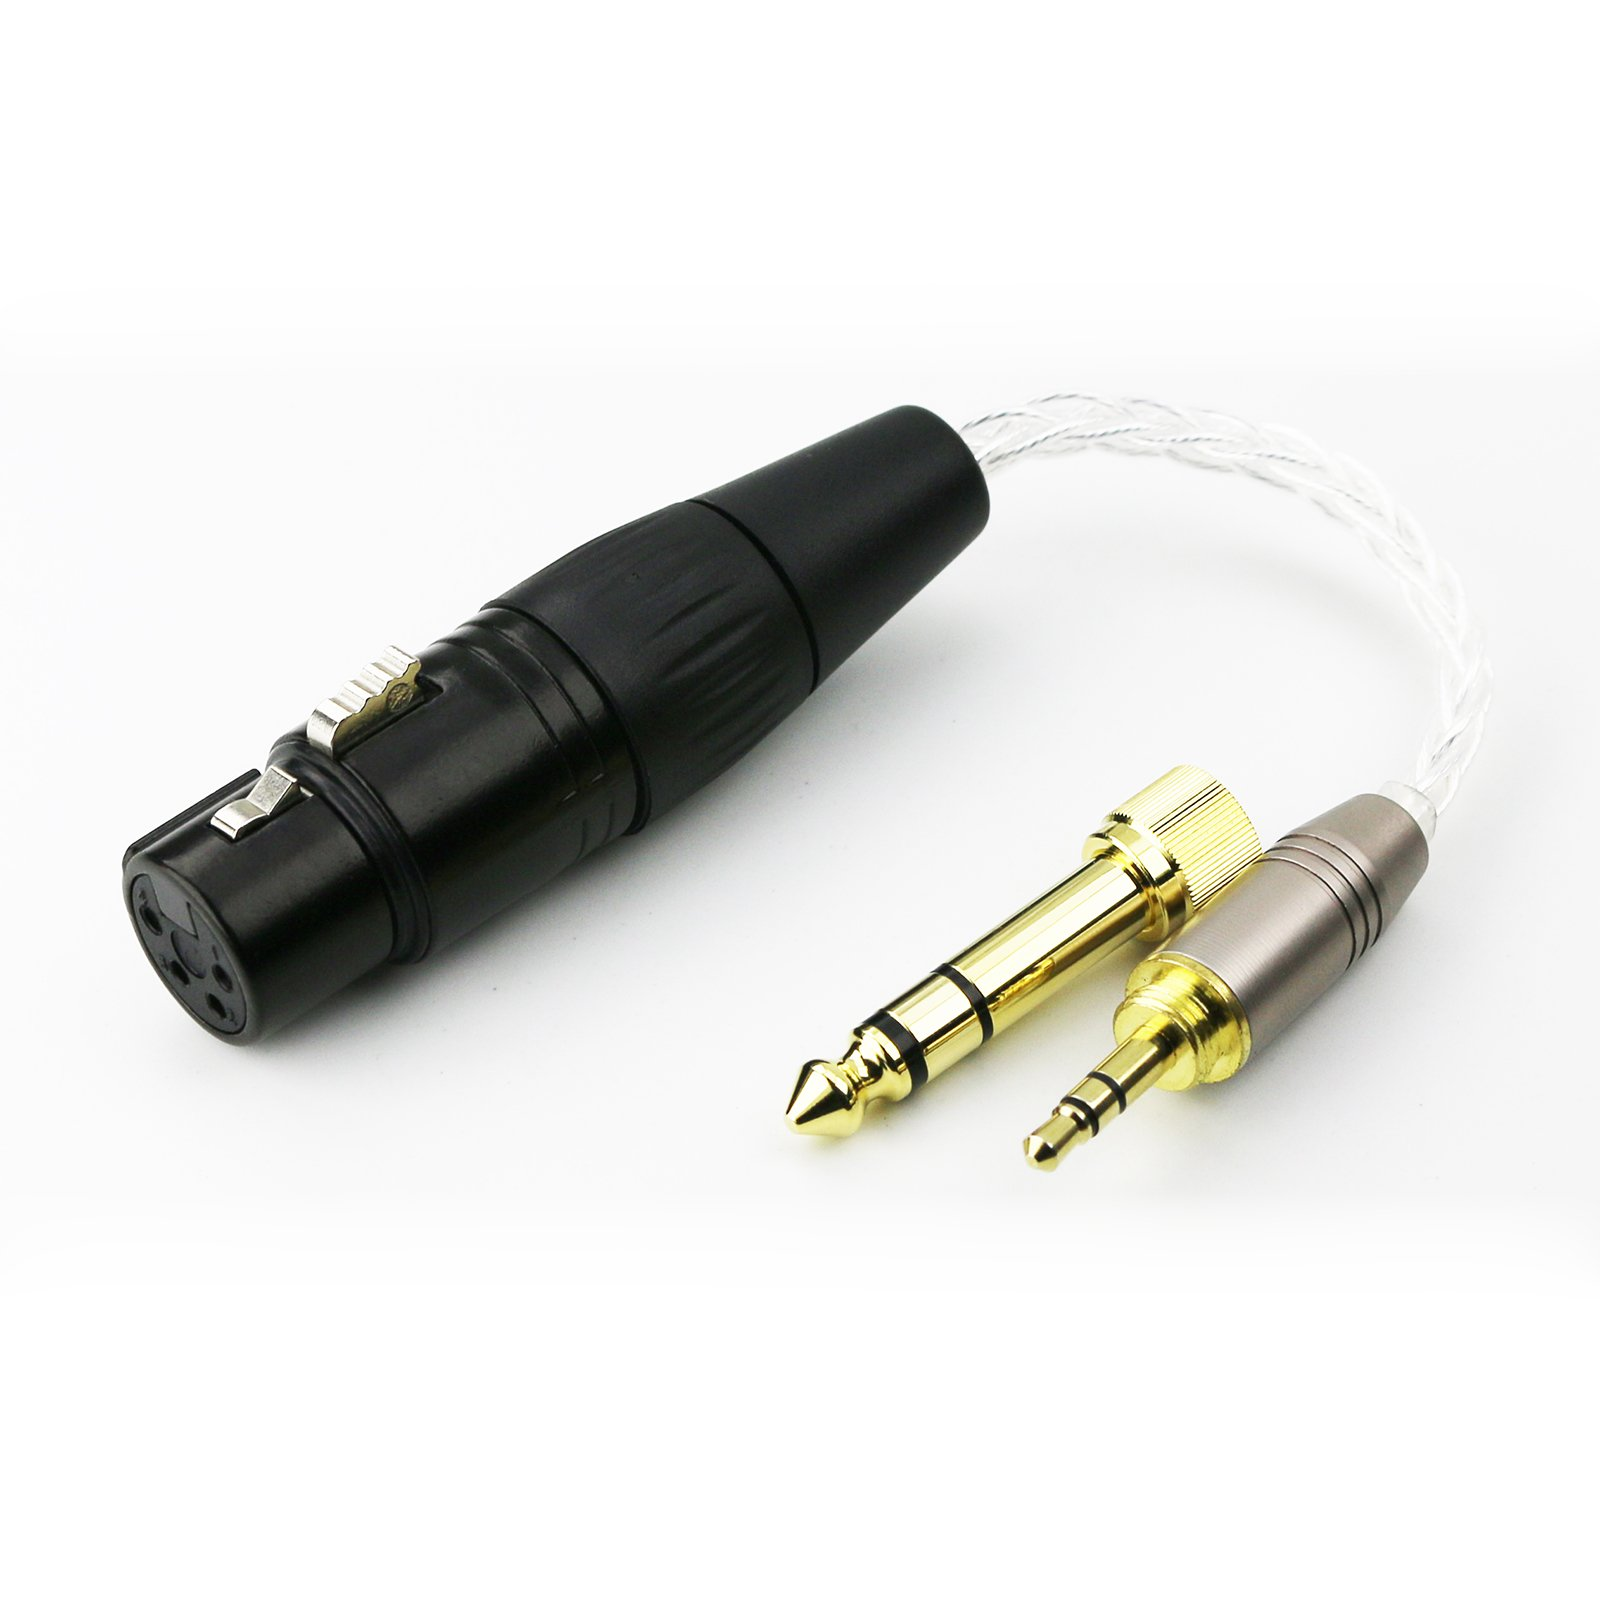 NewFantasia 3.5mm 1/8'' TRS Male & 6.3mm 1/4'' adapter to 4-pin XLR Balanced Female headphone Audio Adapter cable